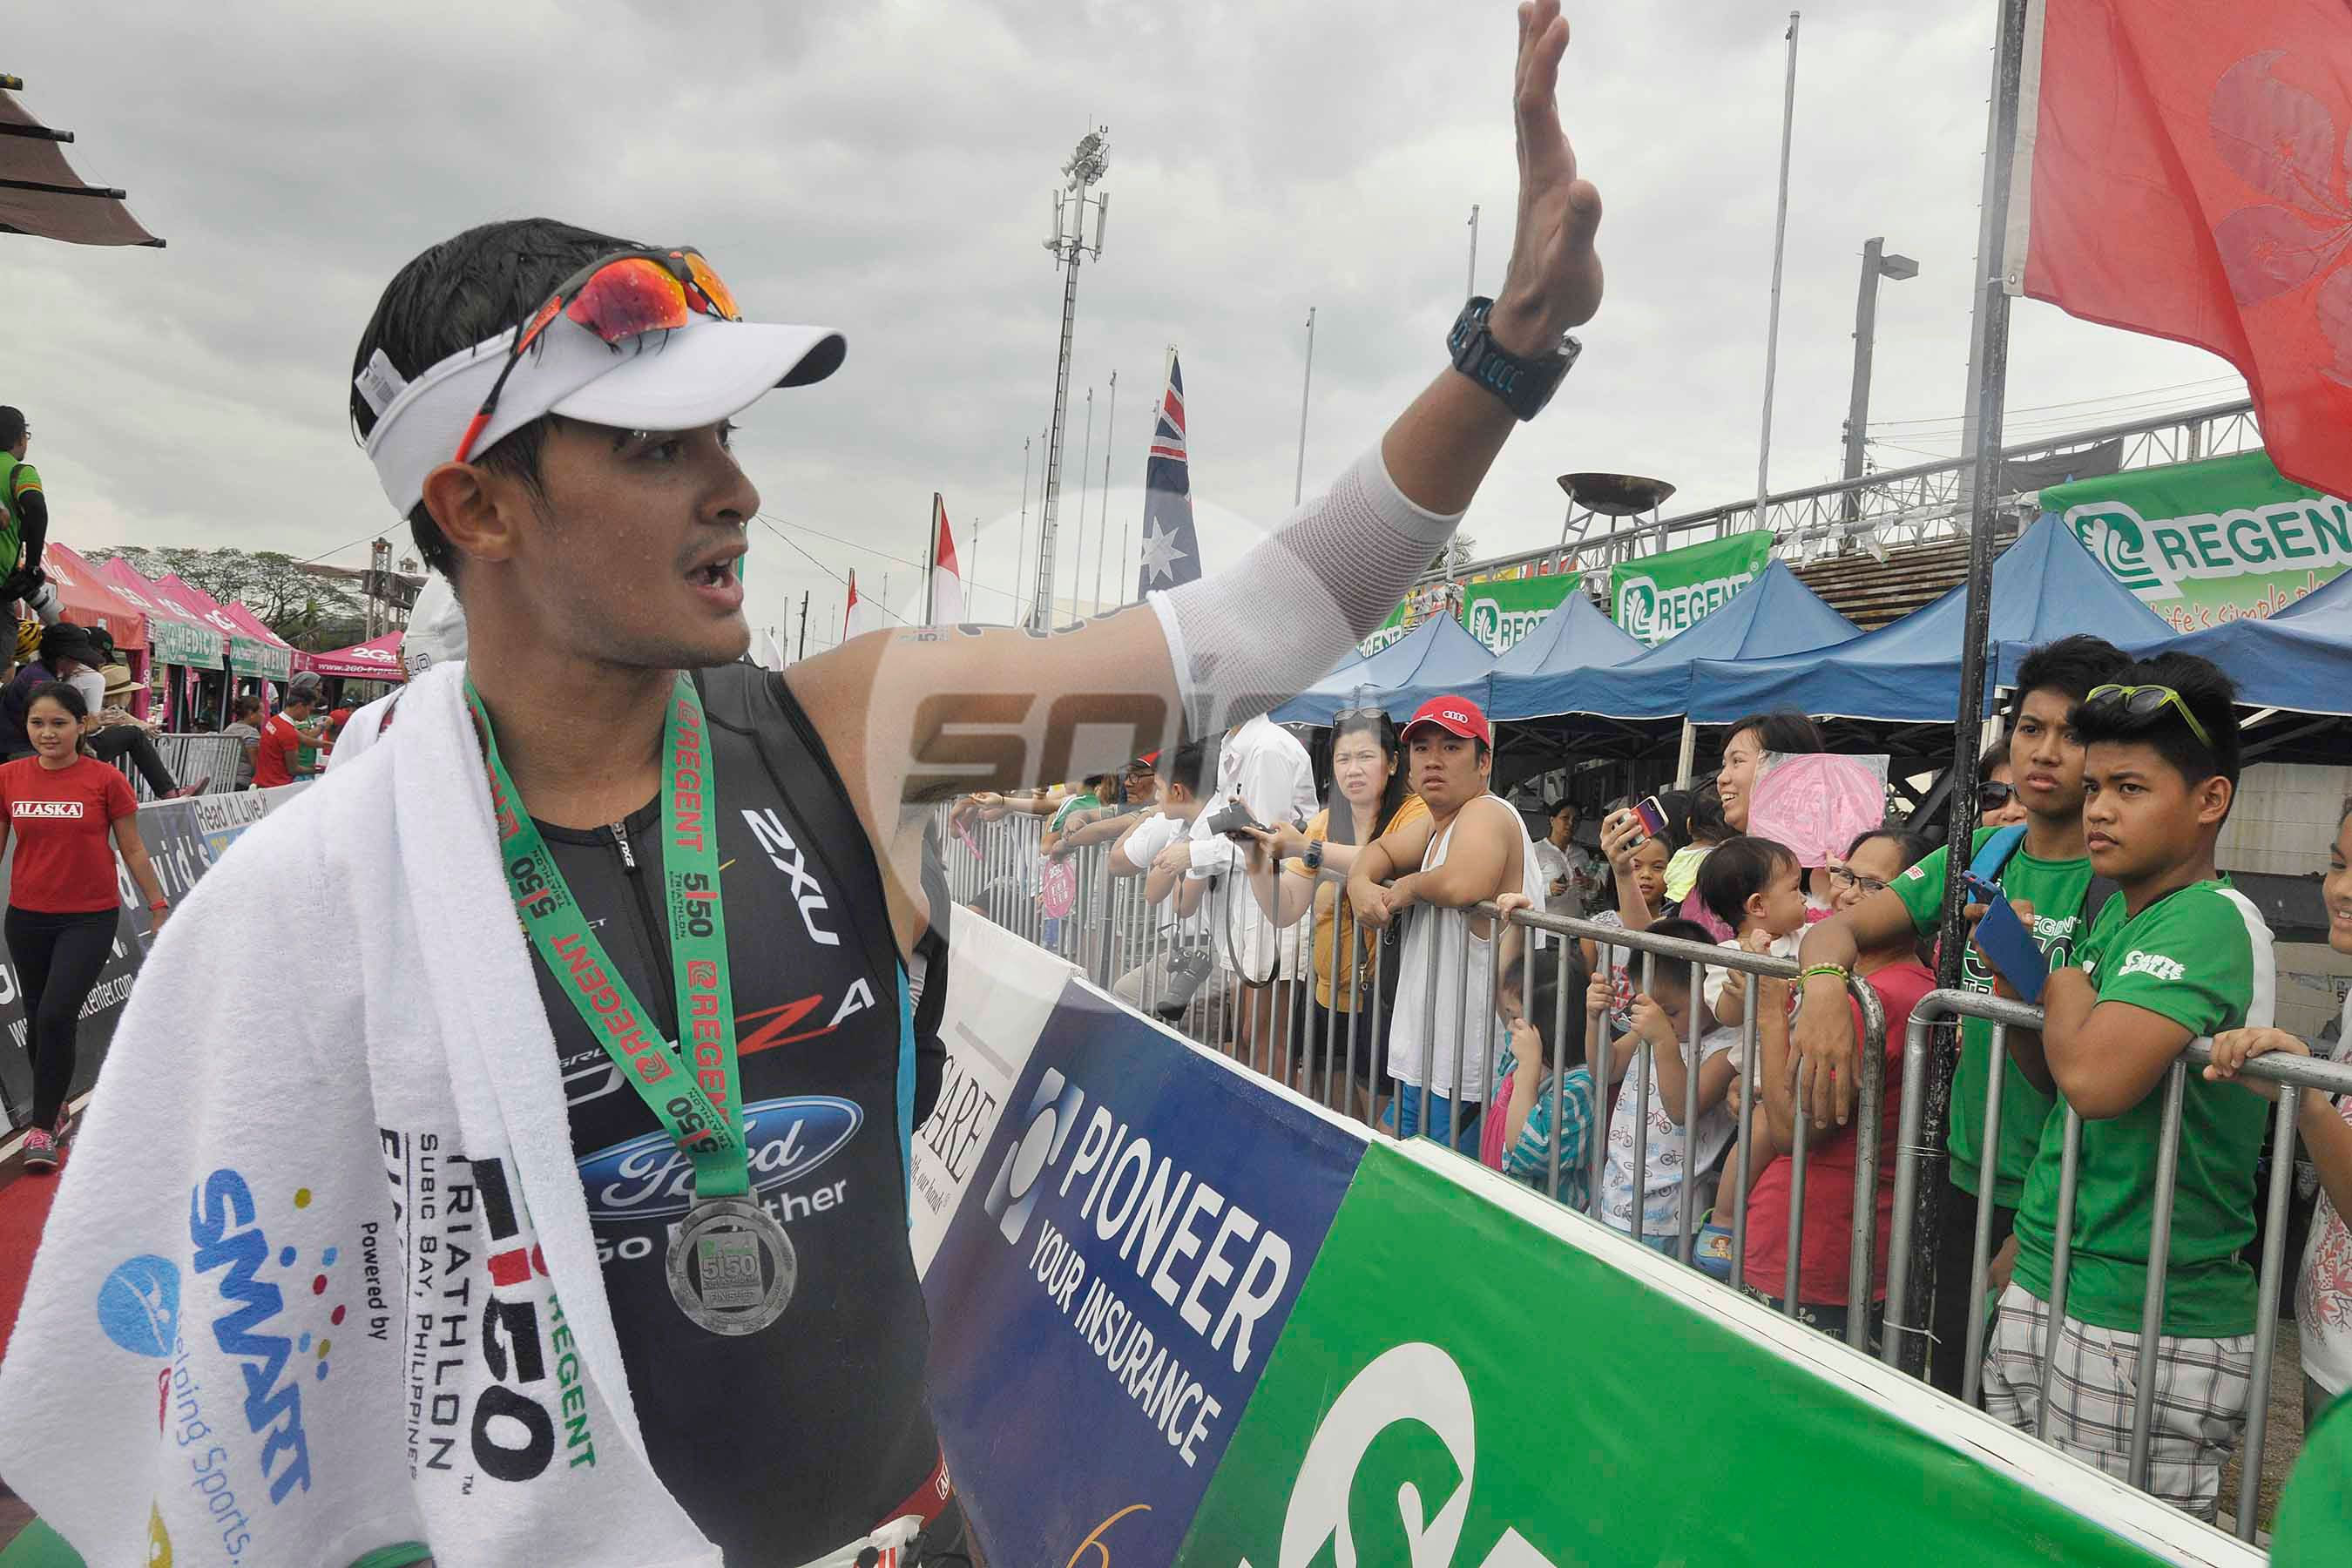 Matteo Guidicelli followed dad's lead - and found a whole new 'family' in triathlon